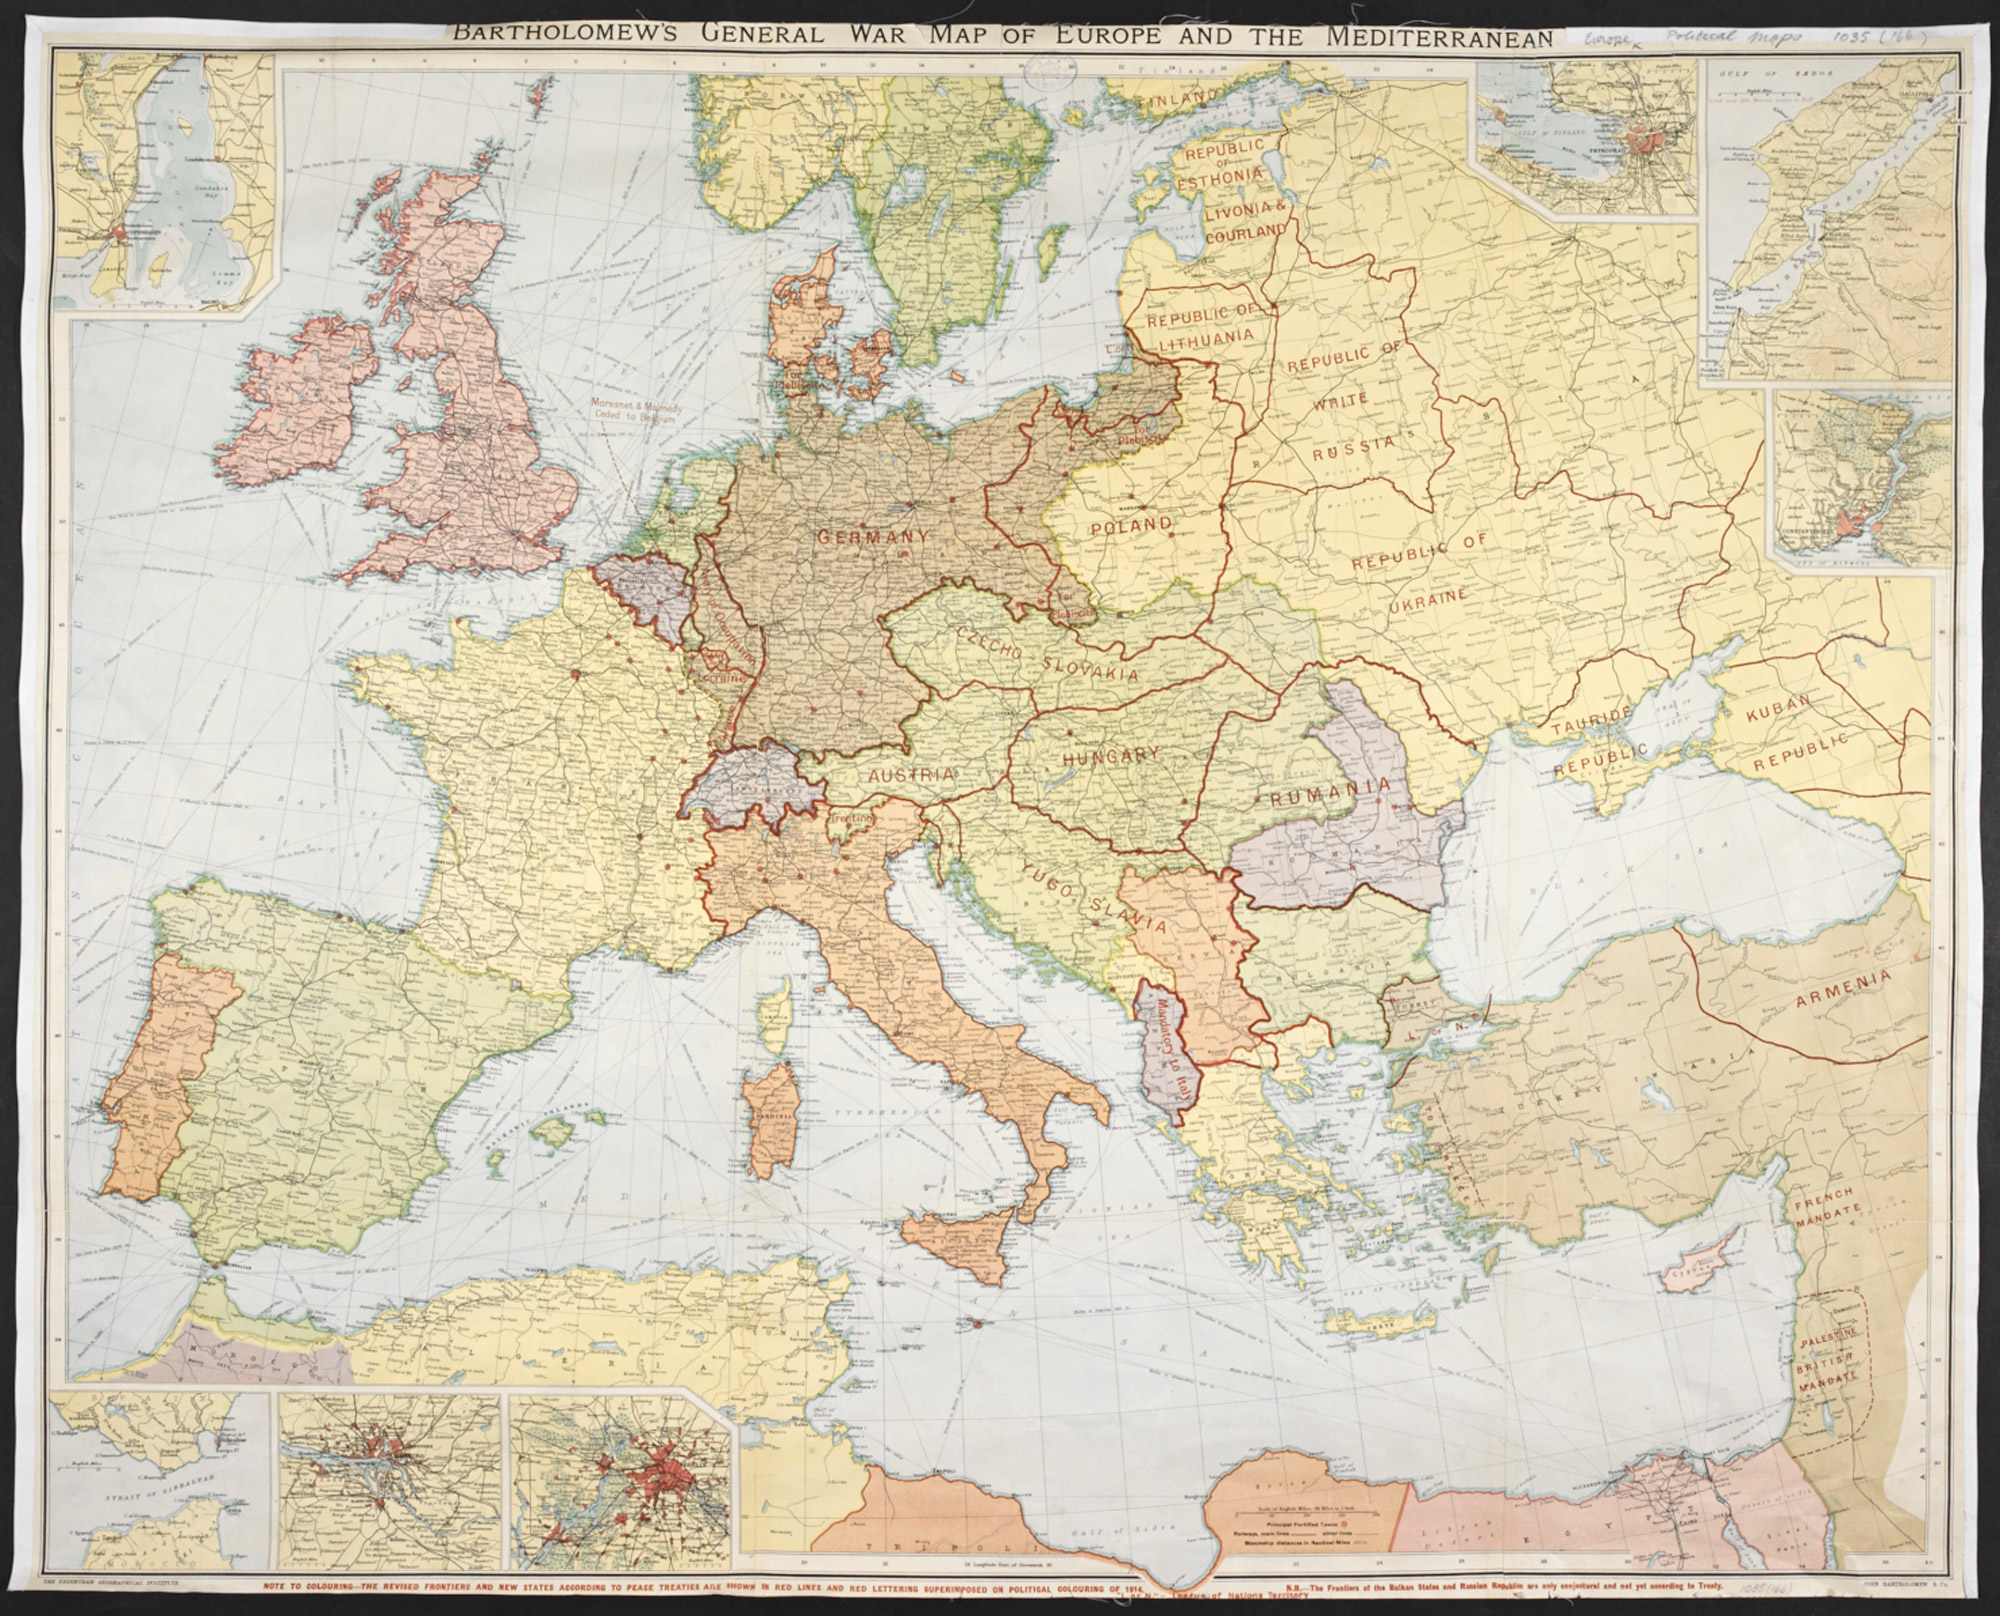 Bartholomew's General War Map of Europe